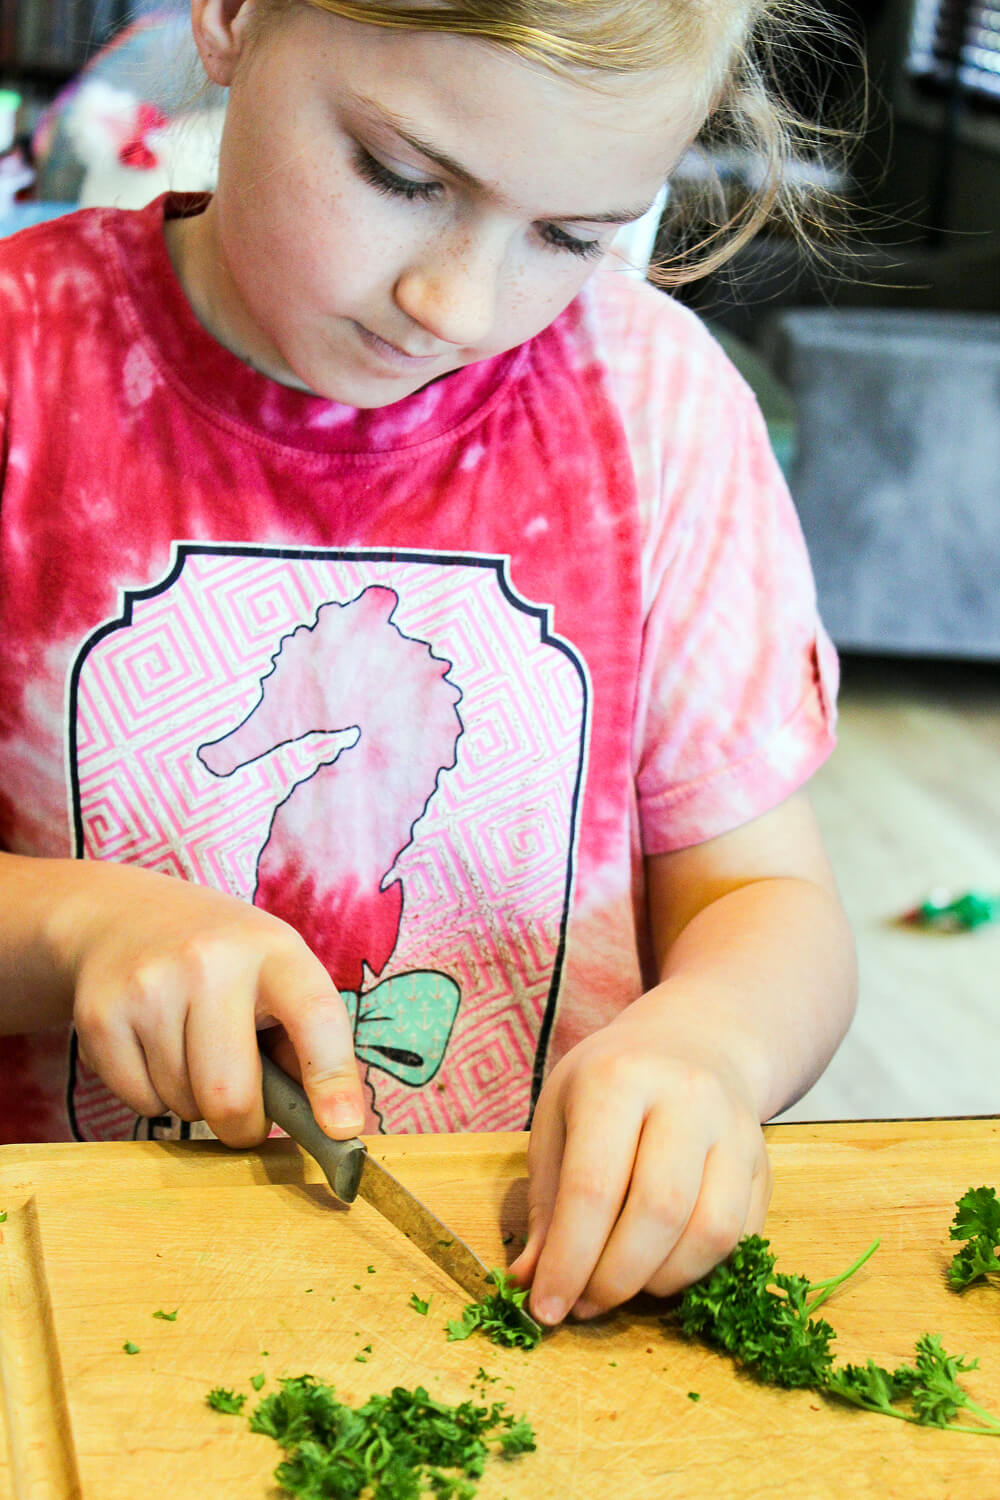 a young girl cutting fresh herbs on a wooden cutting board